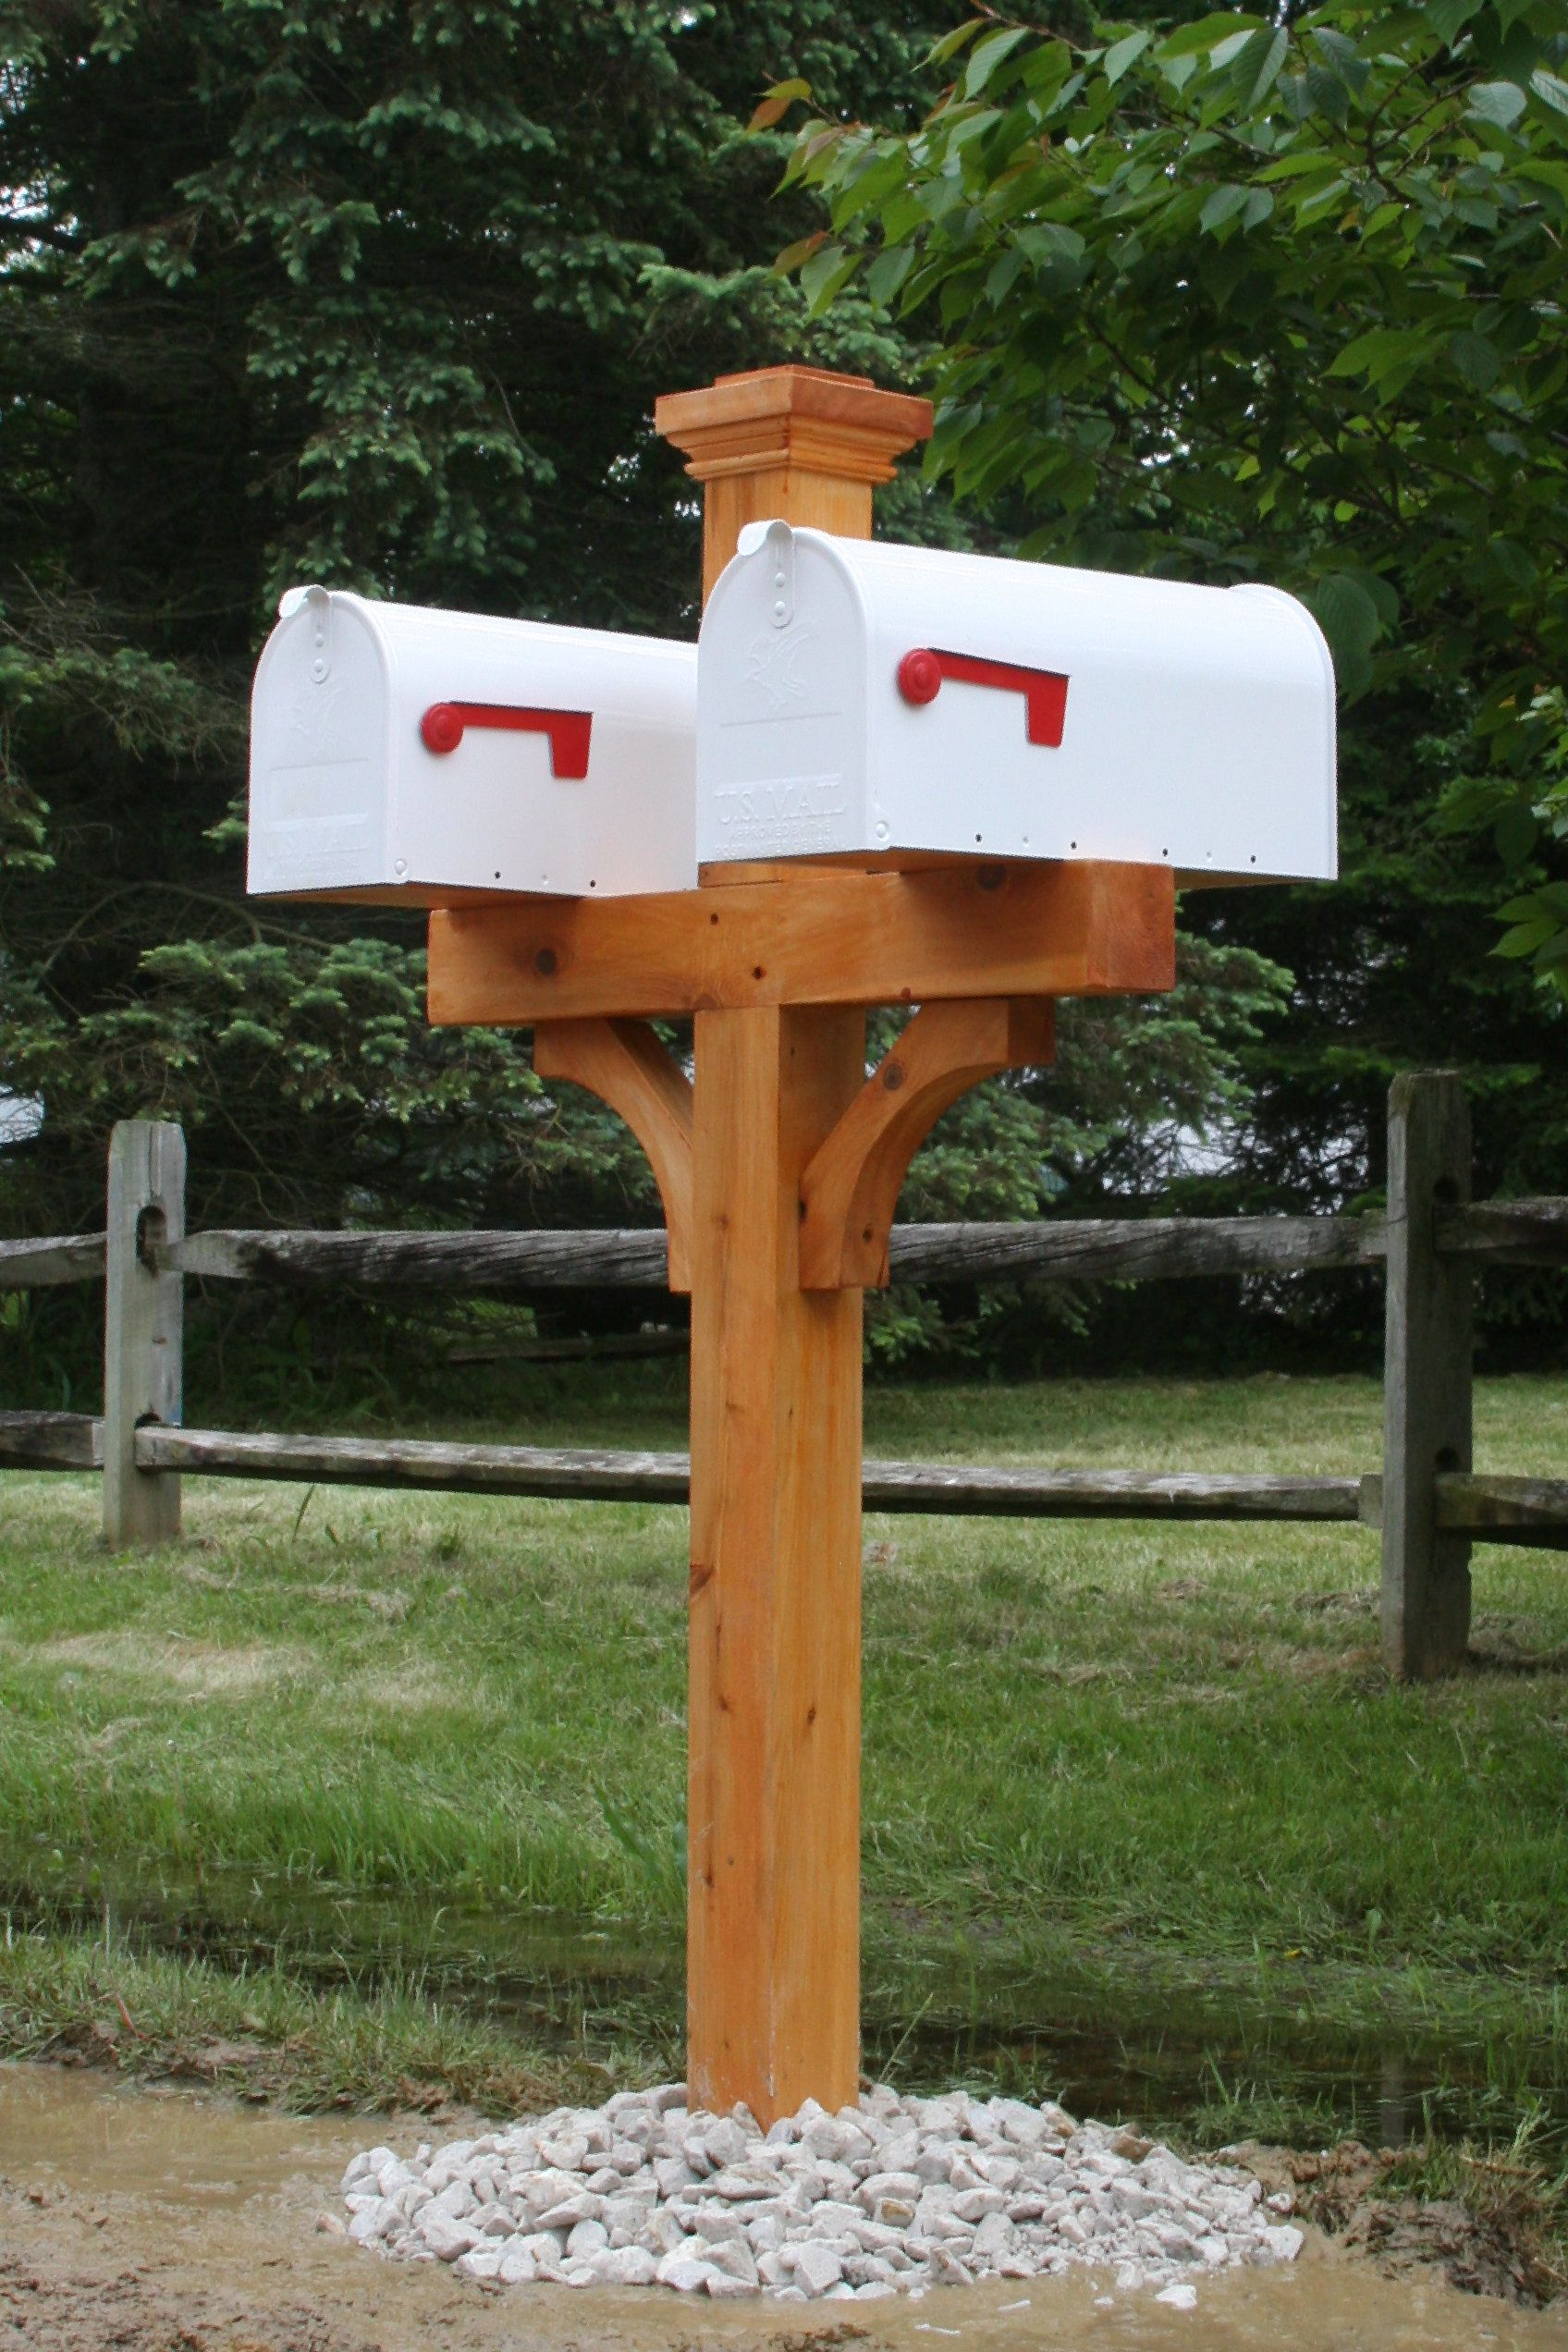 Wooden Light Post Designs Double Cedar Mailbox Post With 2 White Mailboxes Lamp